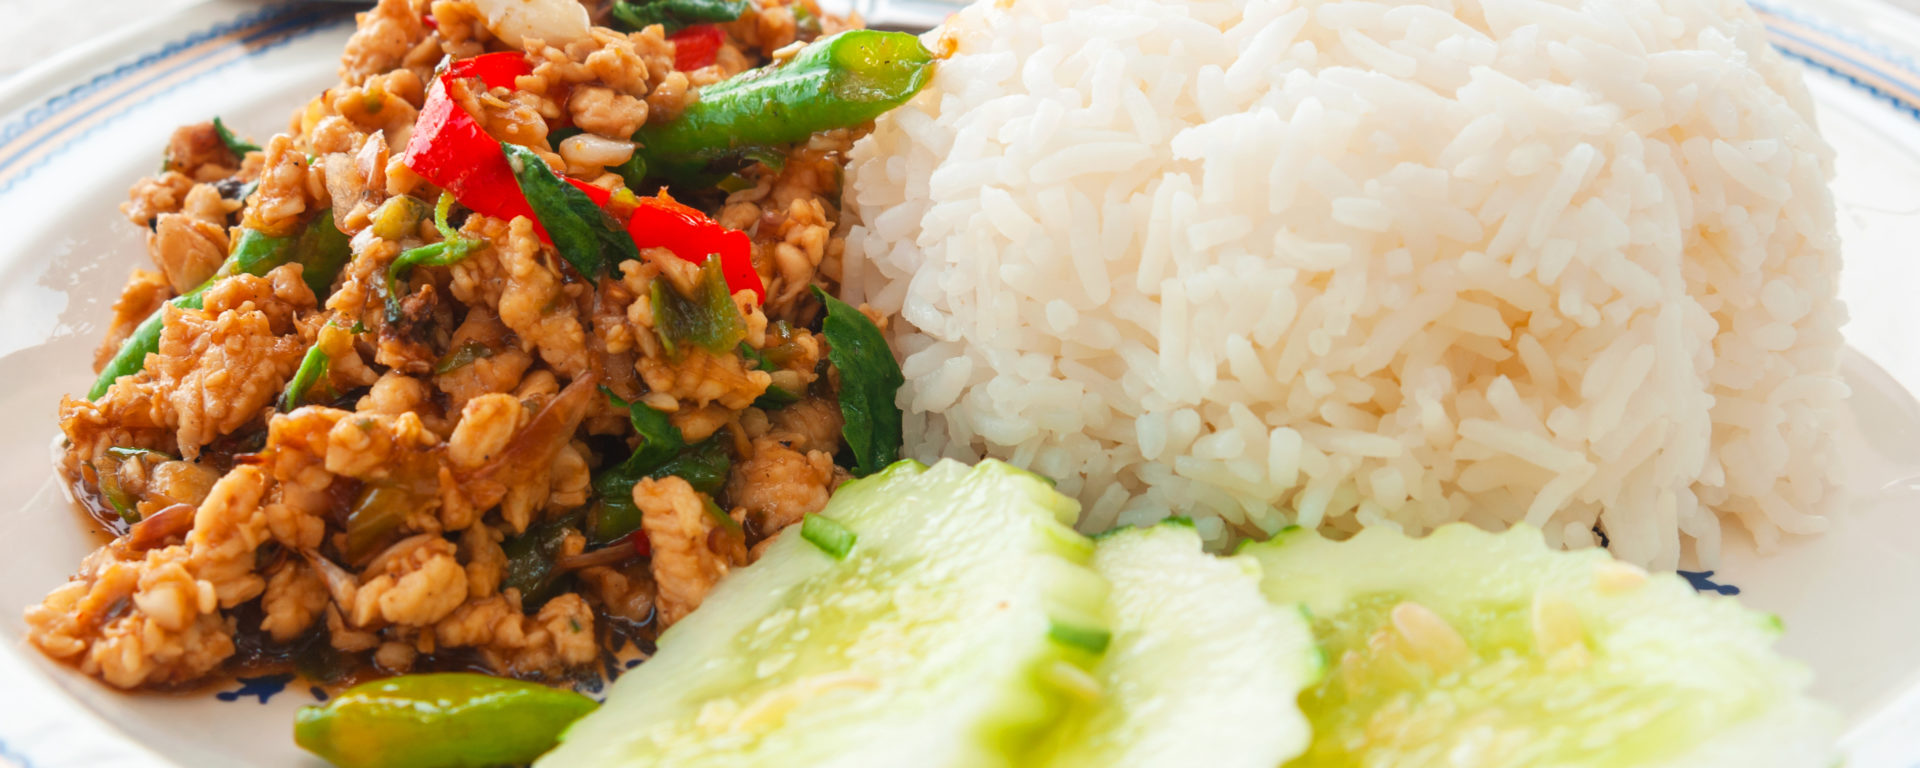 Thai Basil Chicken Recipe - So Good it'll Make Your Family Wok to